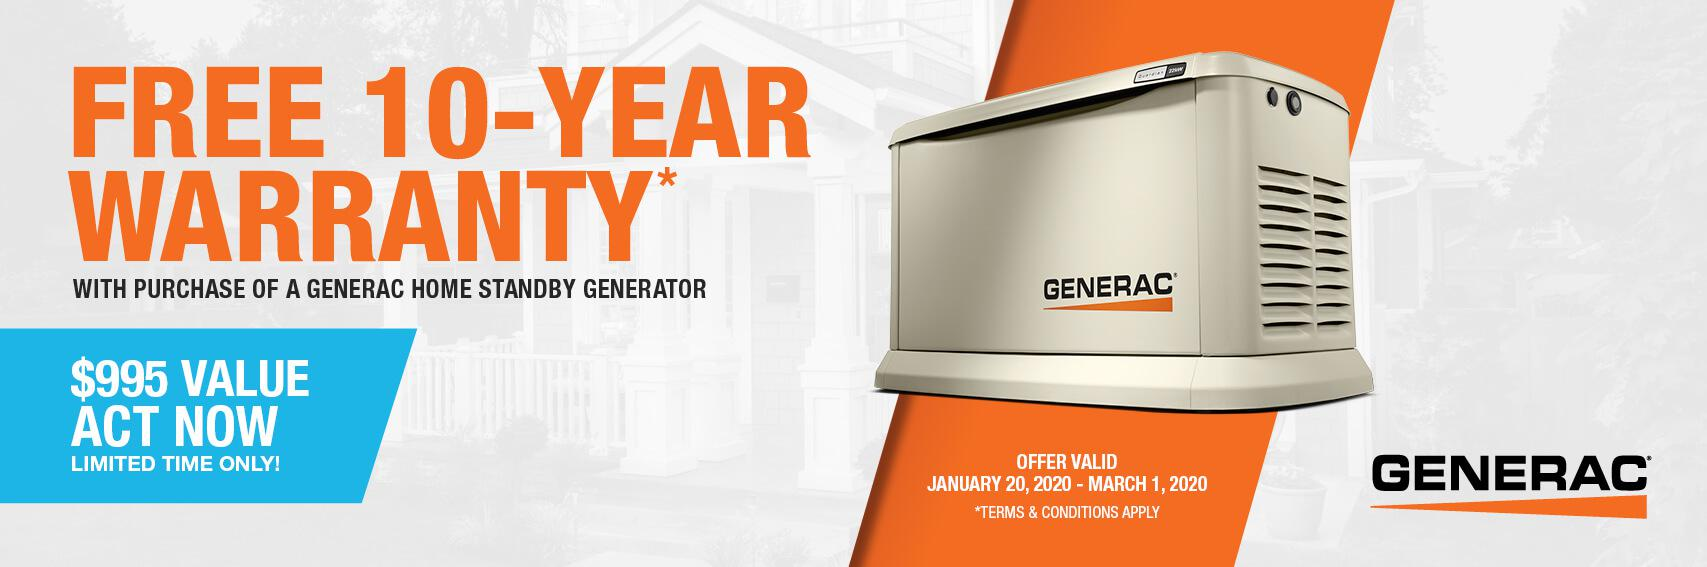 Homestandby Generator Deal | Warranty Offer | Generac Dealer | Coopersburg, PA